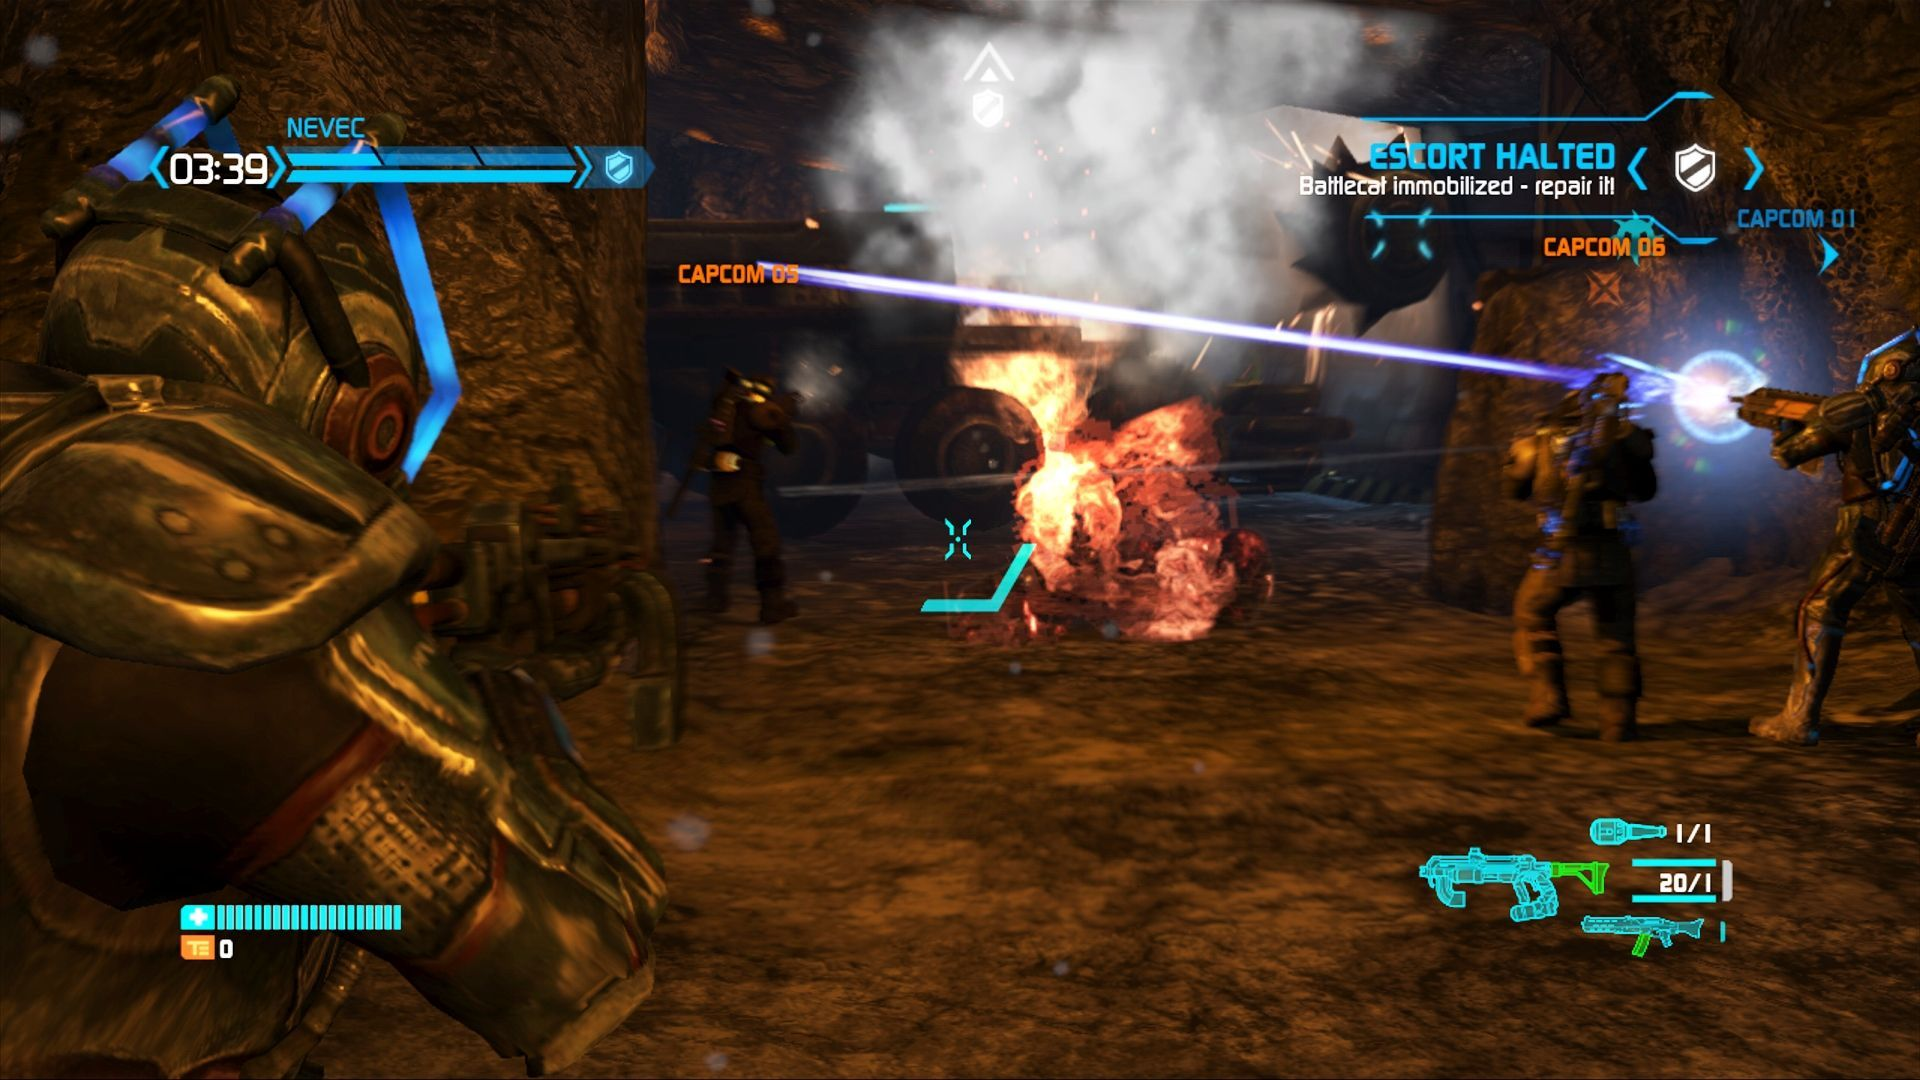 Lost Planet 3 (PC) - 16